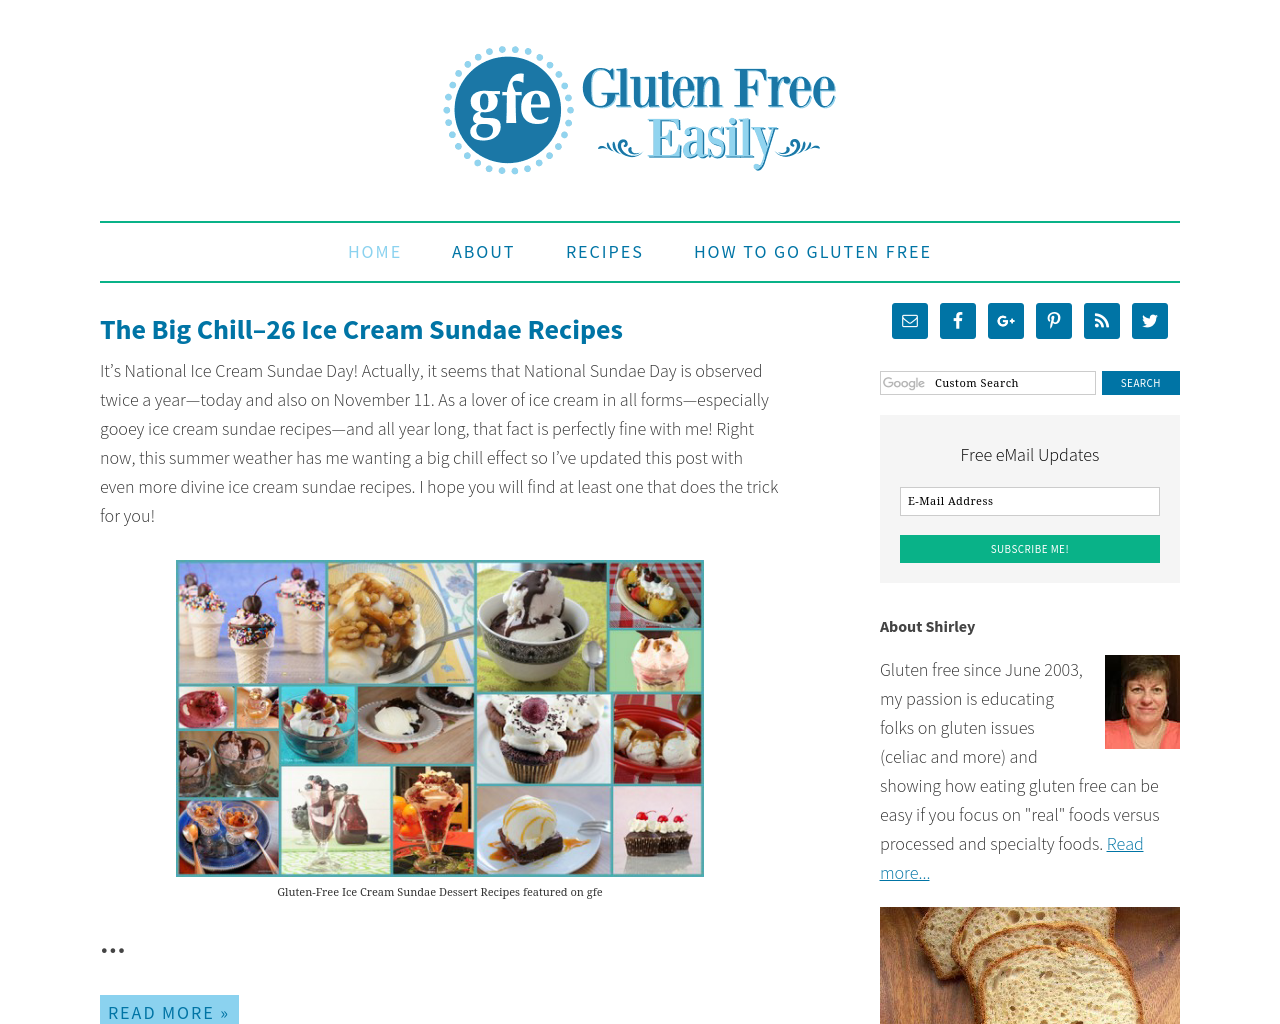 gfe-gluten-free-easily-Advertising-Reviews-Pricing